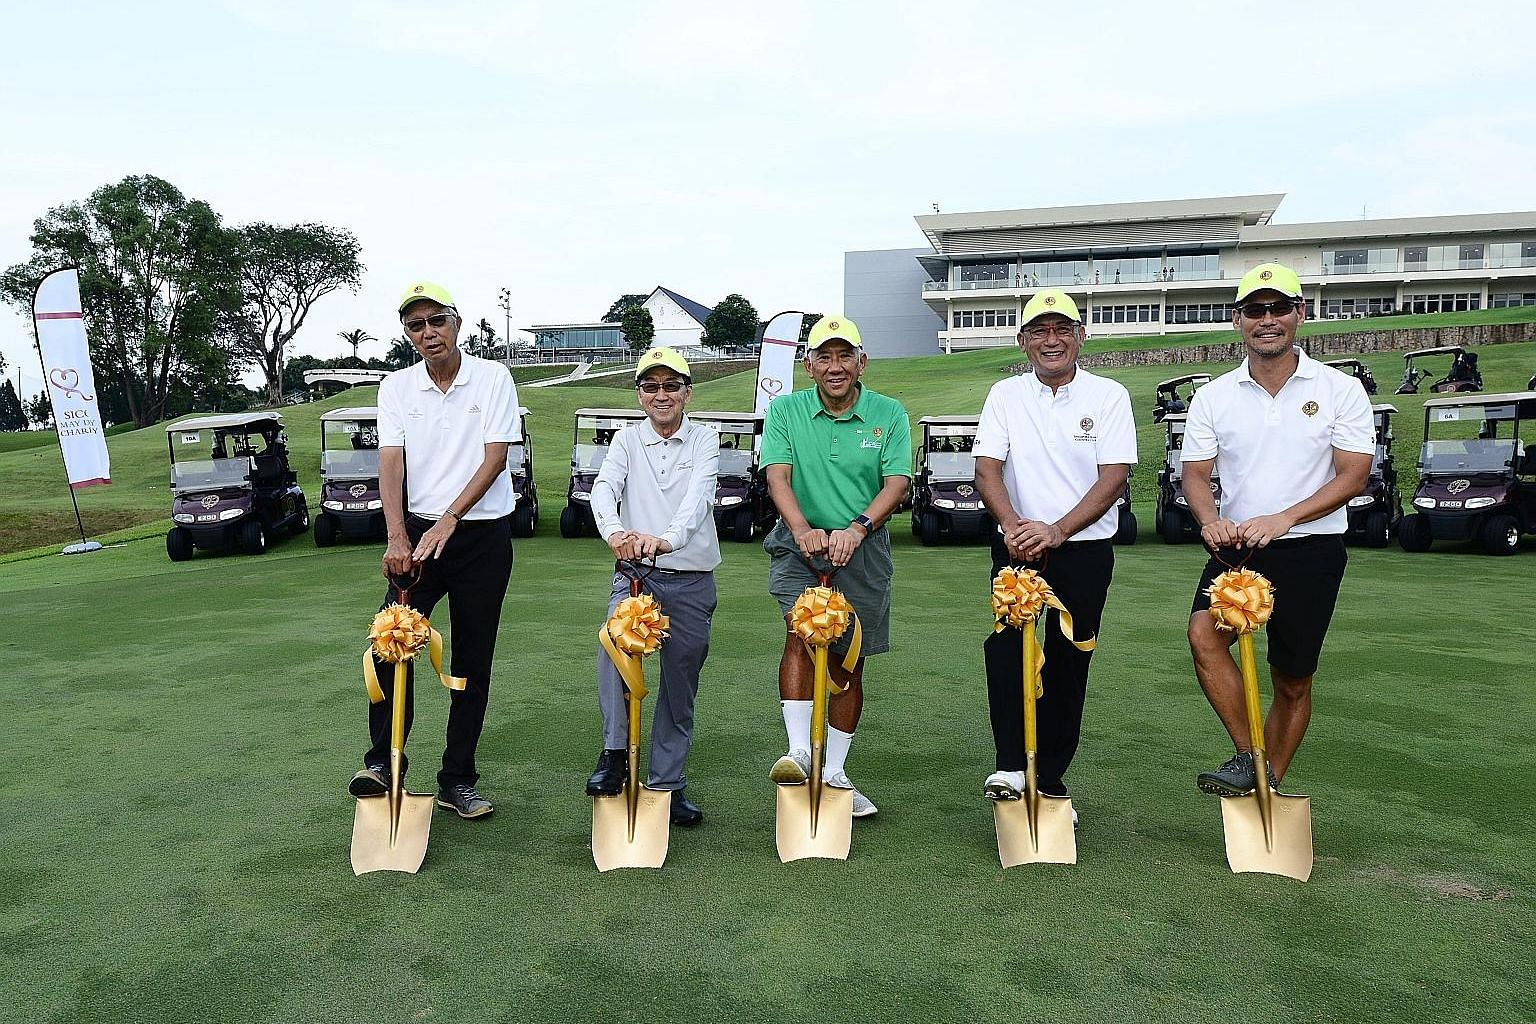 (From left) The Singapore Island Country Club (SICC) golf redevelopment and planning committee chairman Kenneth Chen, deputy chairman Tay Joo Soon, chairman Khoo Boon Hui, president Andrew Low and club captain Ivan Chua posing on the New Course yeste